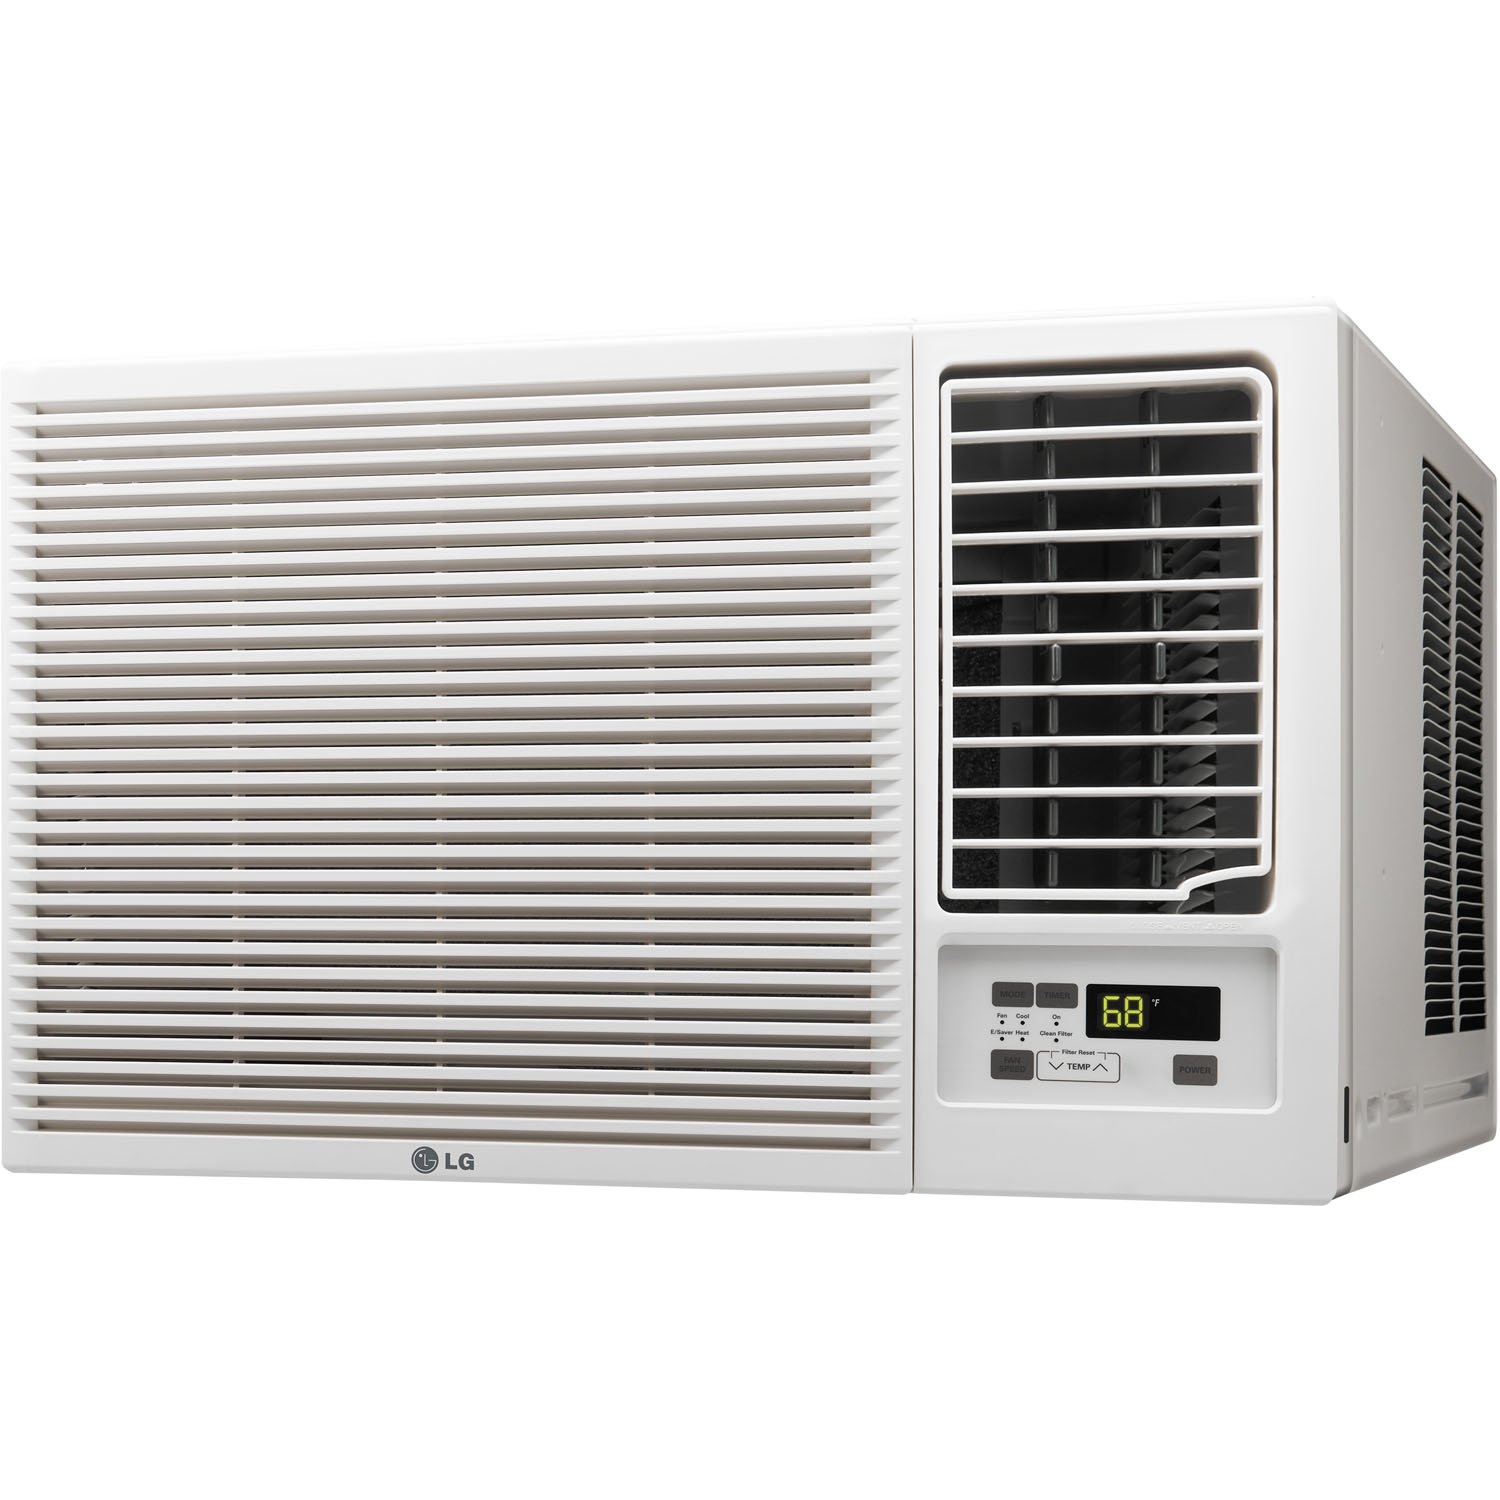 amazoncom lg electronics lw1215hr 12000 btu 230 volt slide in out chassis air conditioner with 11200 btu supplemental heat function home kitchen - Air Conditioner And Heater